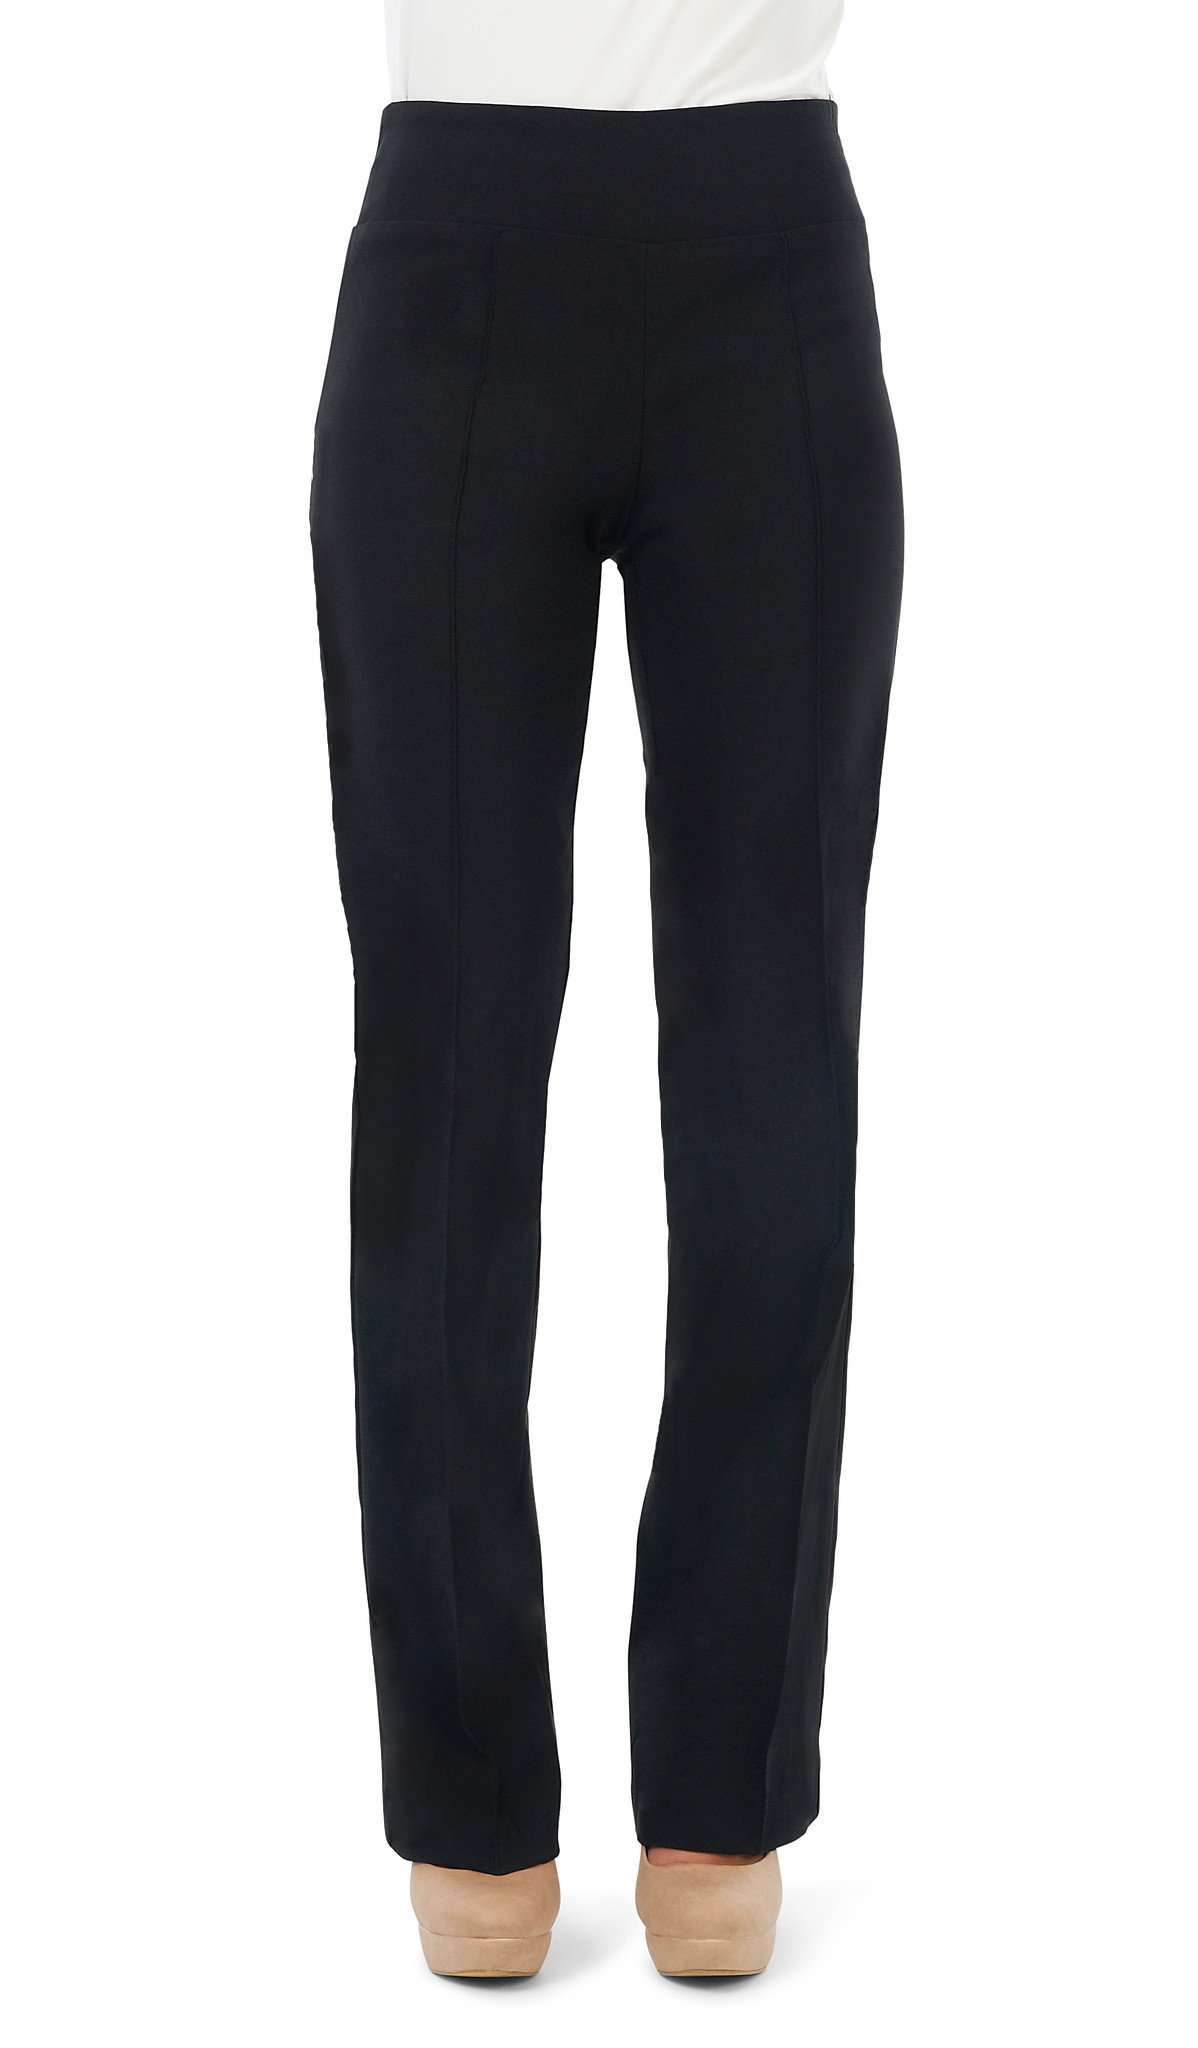 Black Miracle Pant Best Seller